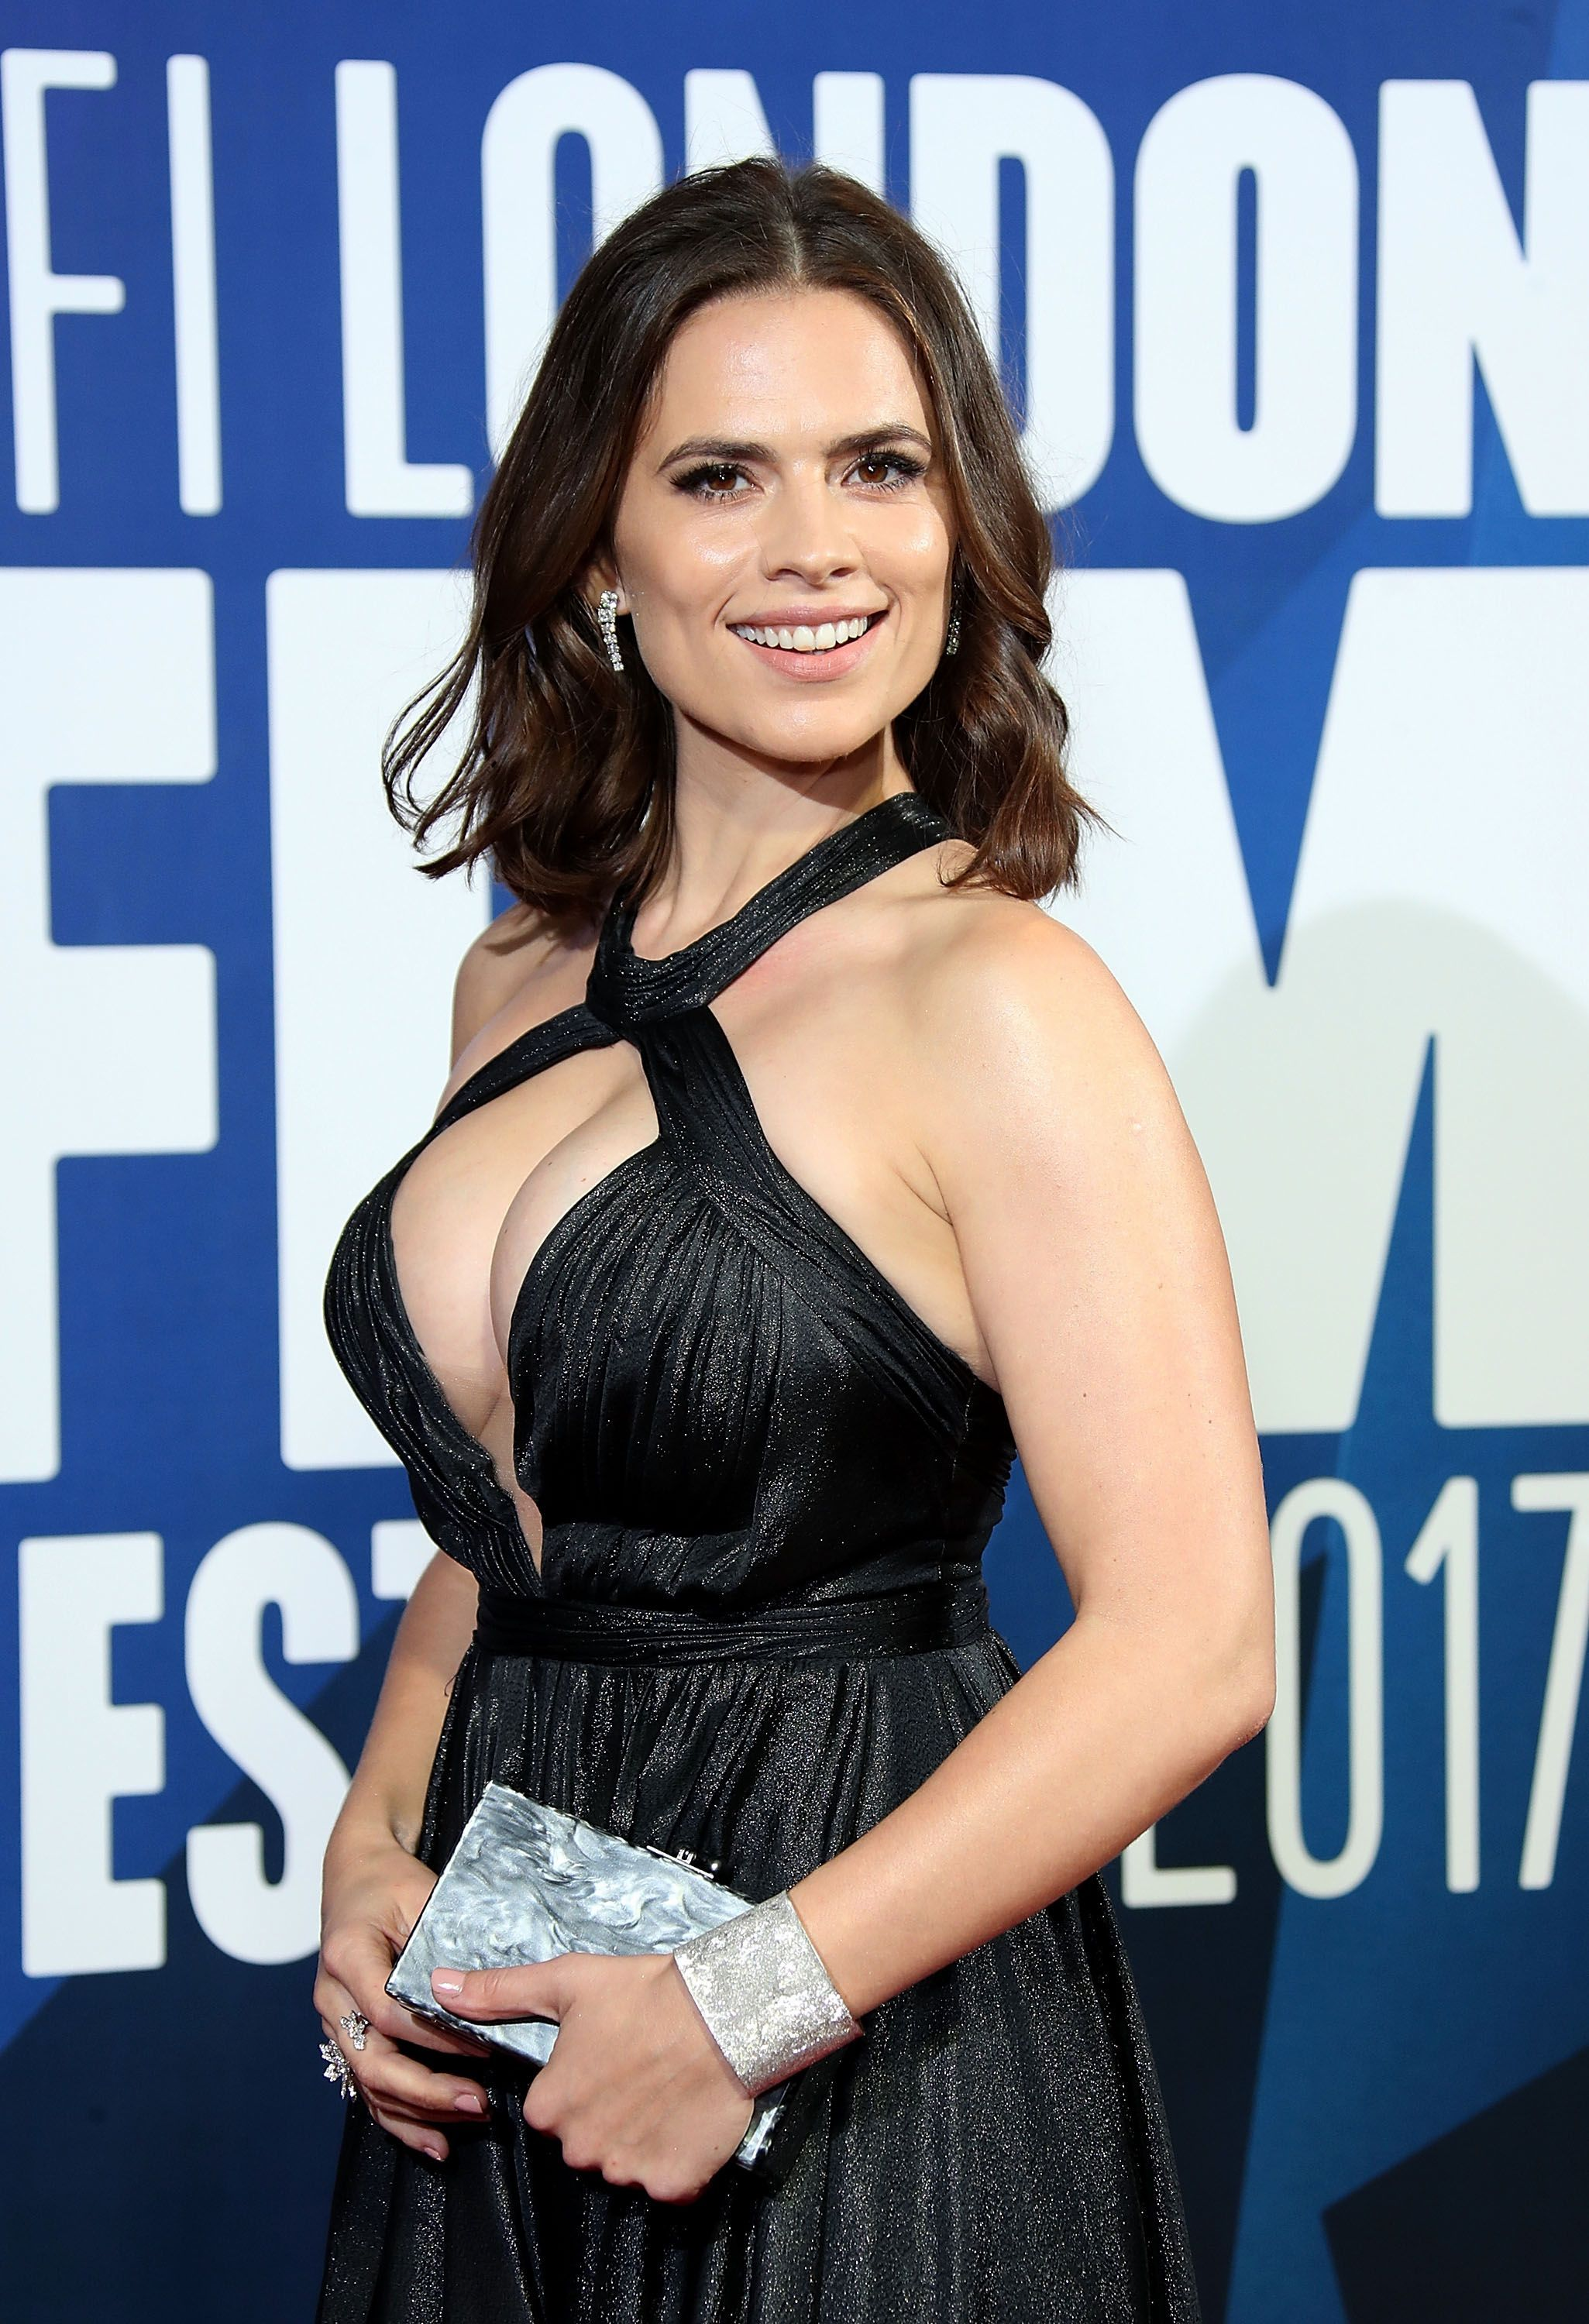 TheFappening Hayley Atwell nudes (57 photo), Topless, Cleavage, Feet, braless 2015